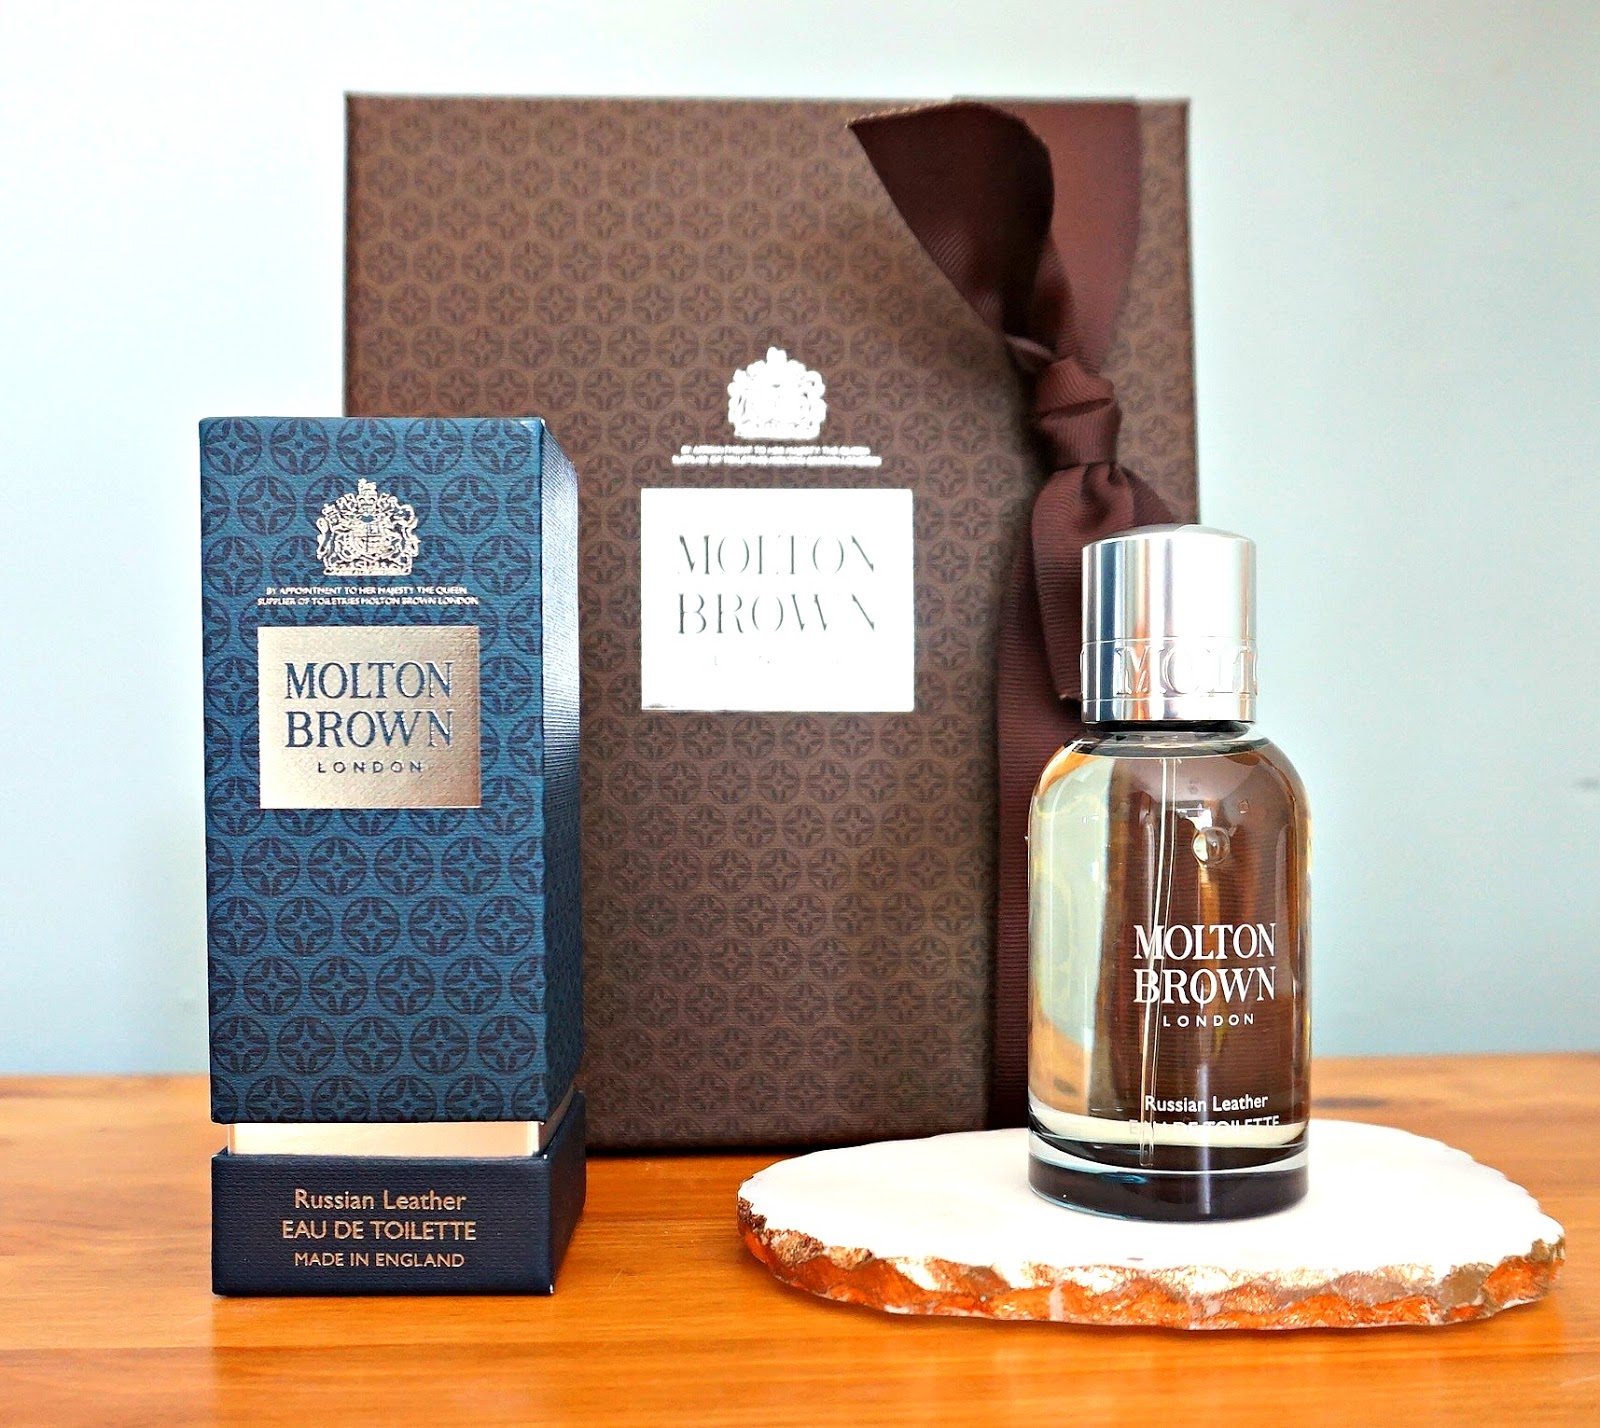 Molton Brown Russian Leather EDT review